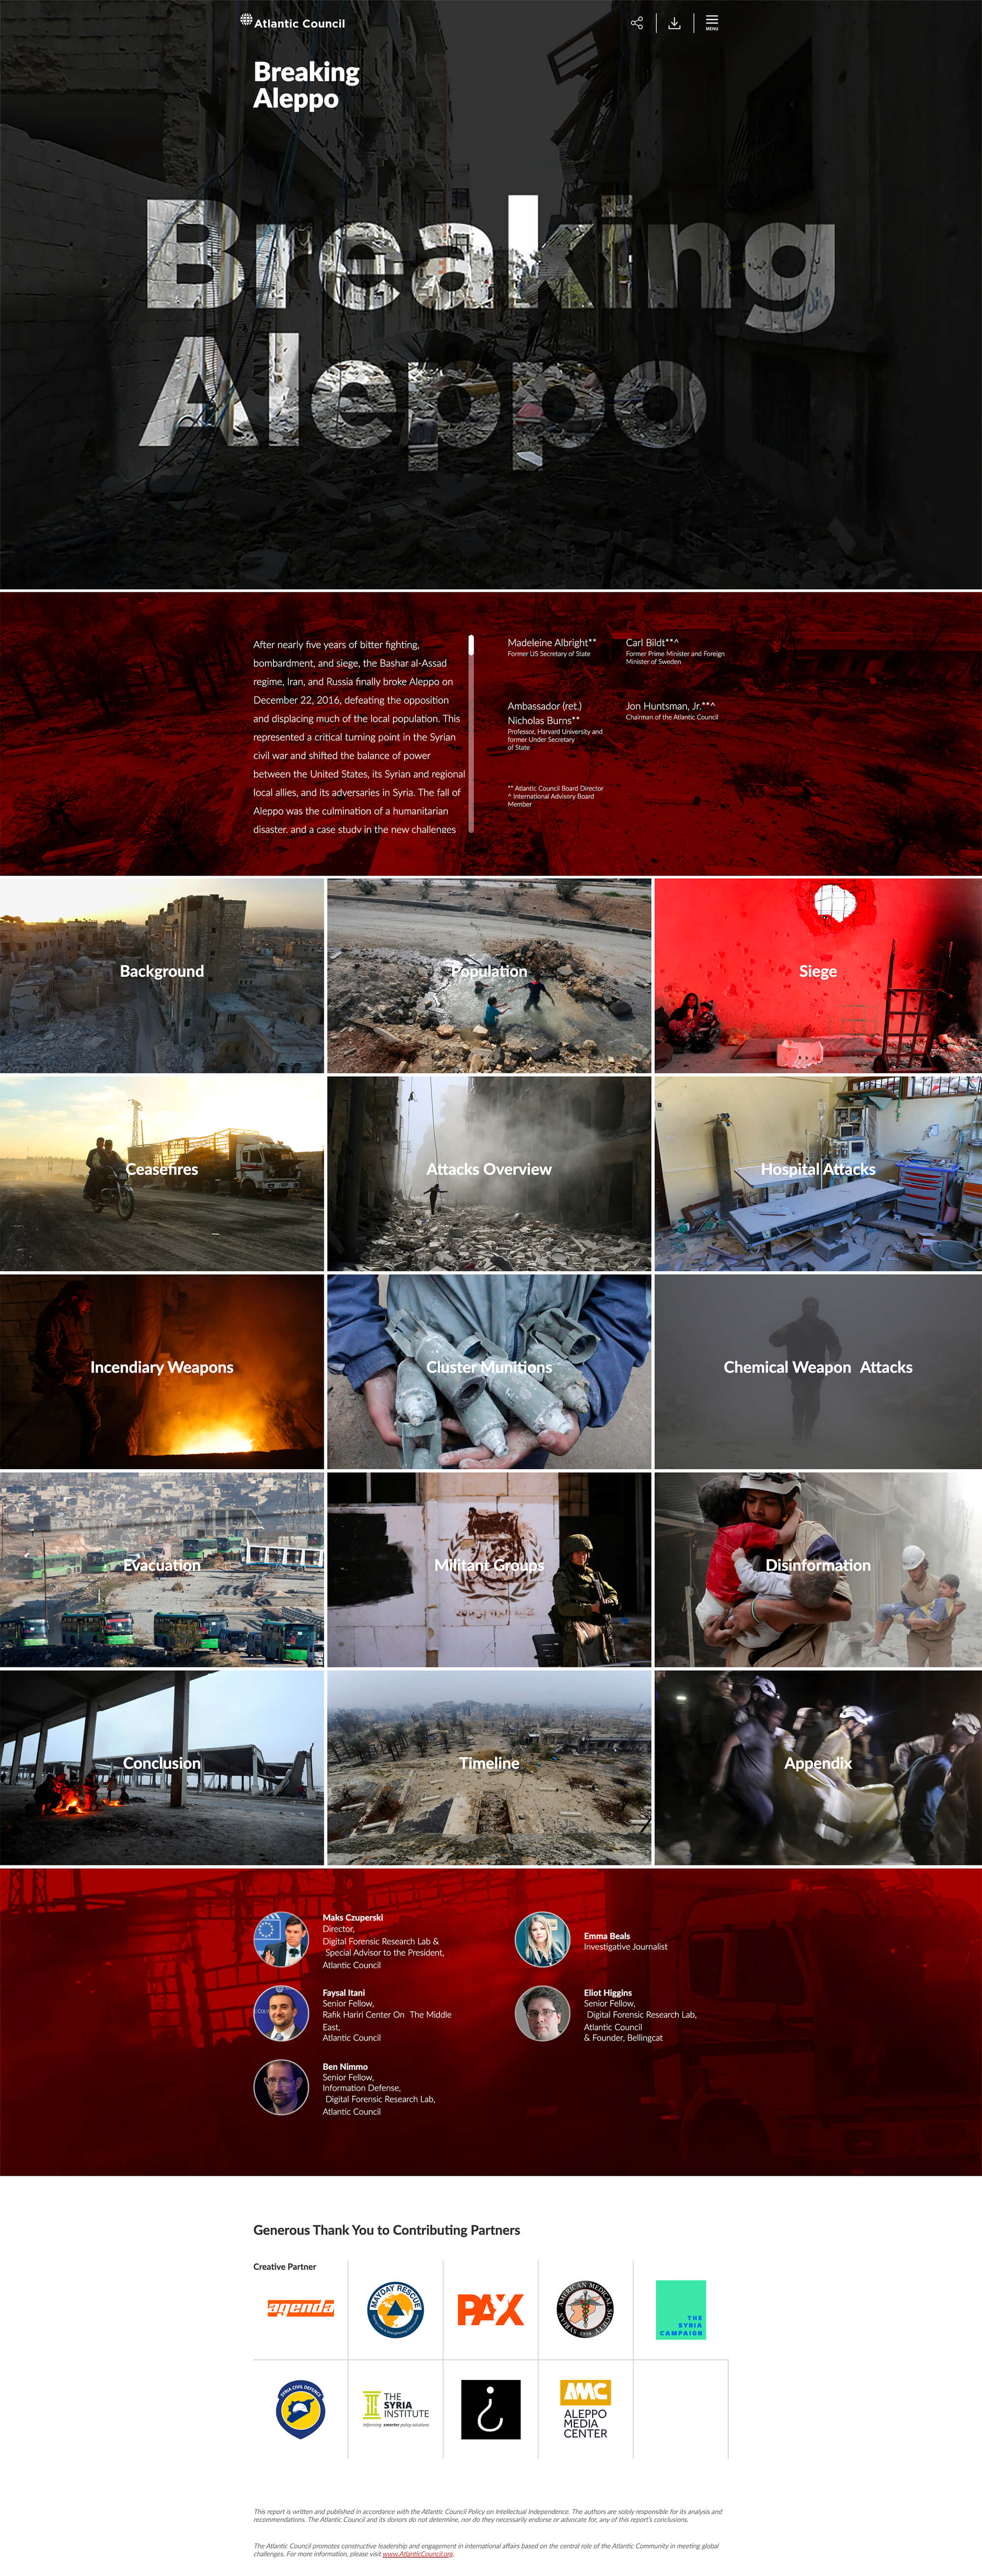 Breaking Aleppo website screenshot